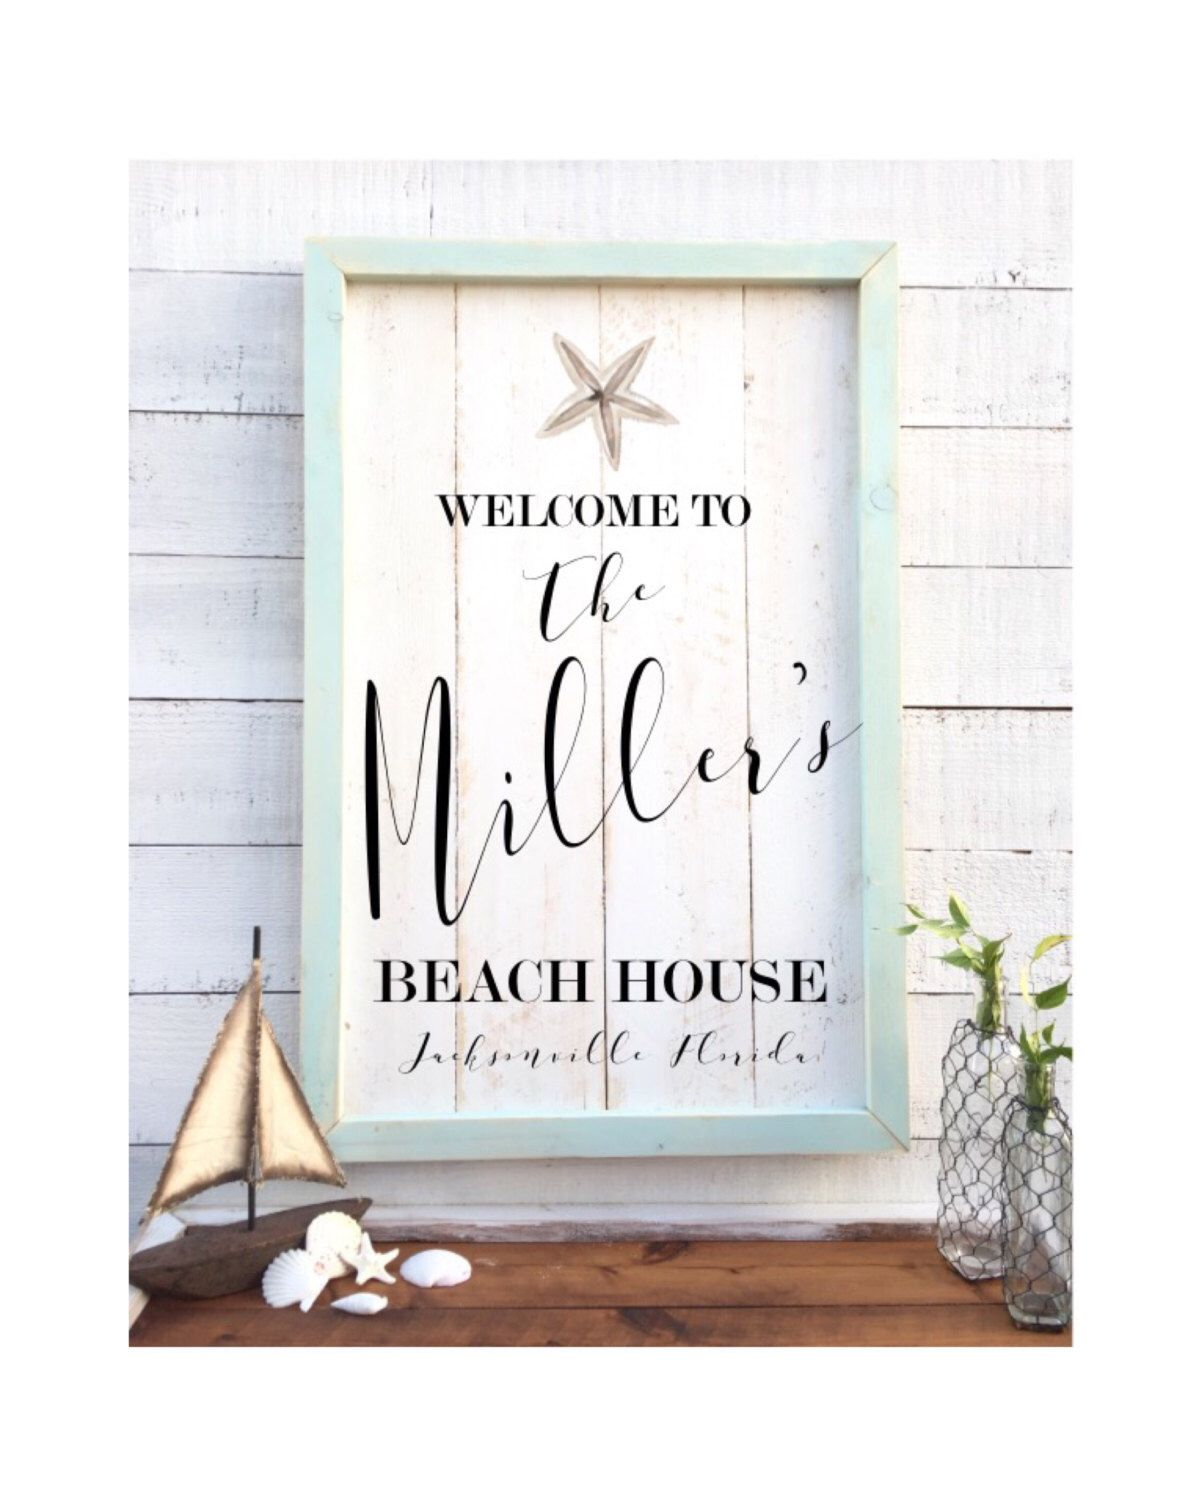 Shabby Chic Beach House Sign Vintage Home Decor By Brushandtwine On Etsy Https